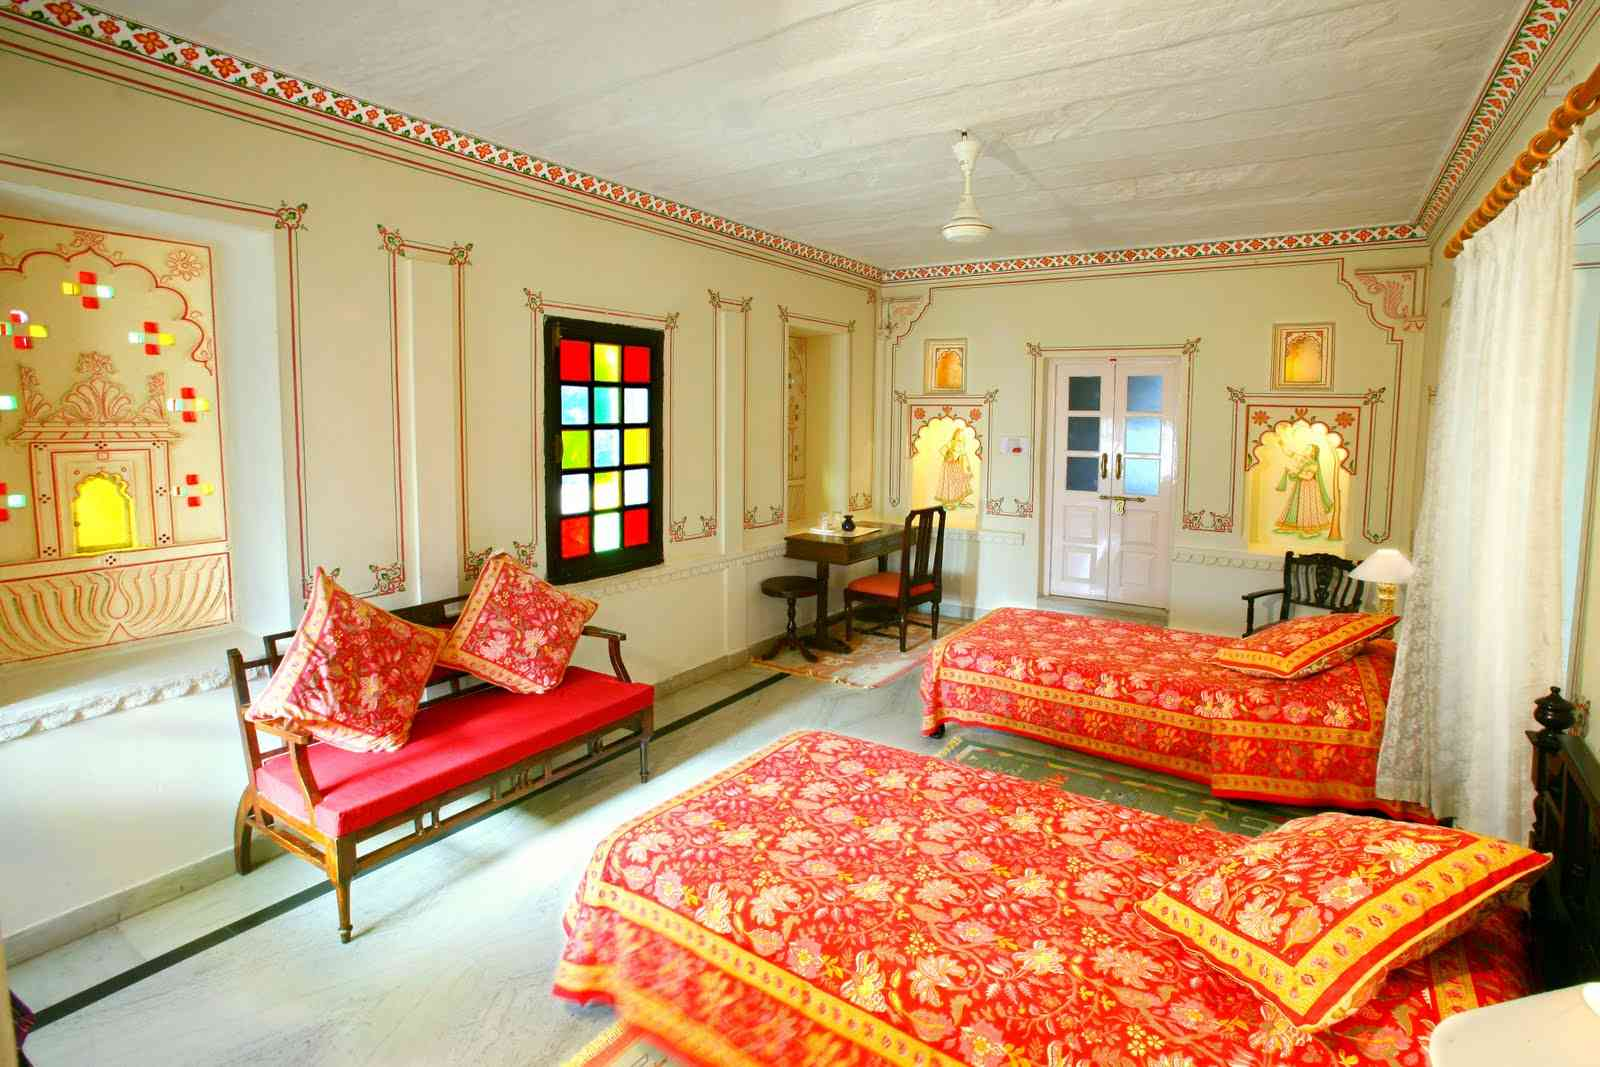 living room design rajasthani  Rajasthani Style Interior Decoration Ideas to furnish your home